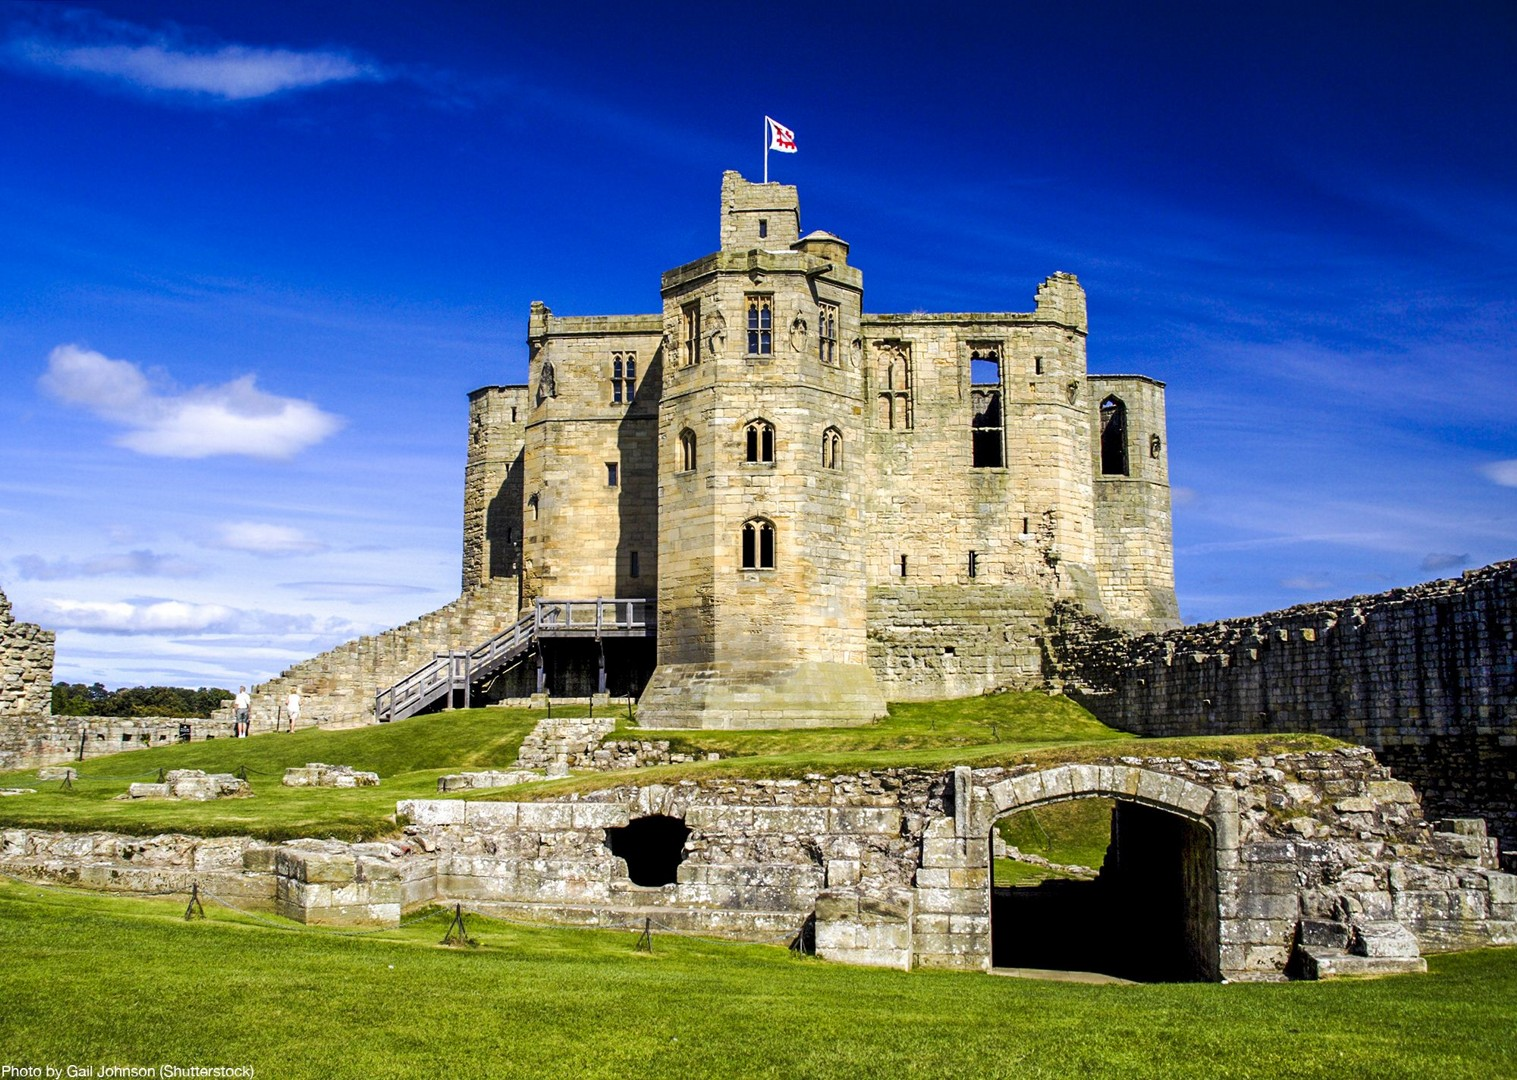 uk-traditional-castles-bamburgh-dunstanburgh-newton-by-the-sea-cycling-holiday.jpg - UK - Northumberland Coast - 4 Days Cycling - Self-Guided Family Cycling Holiday - Family Cycling